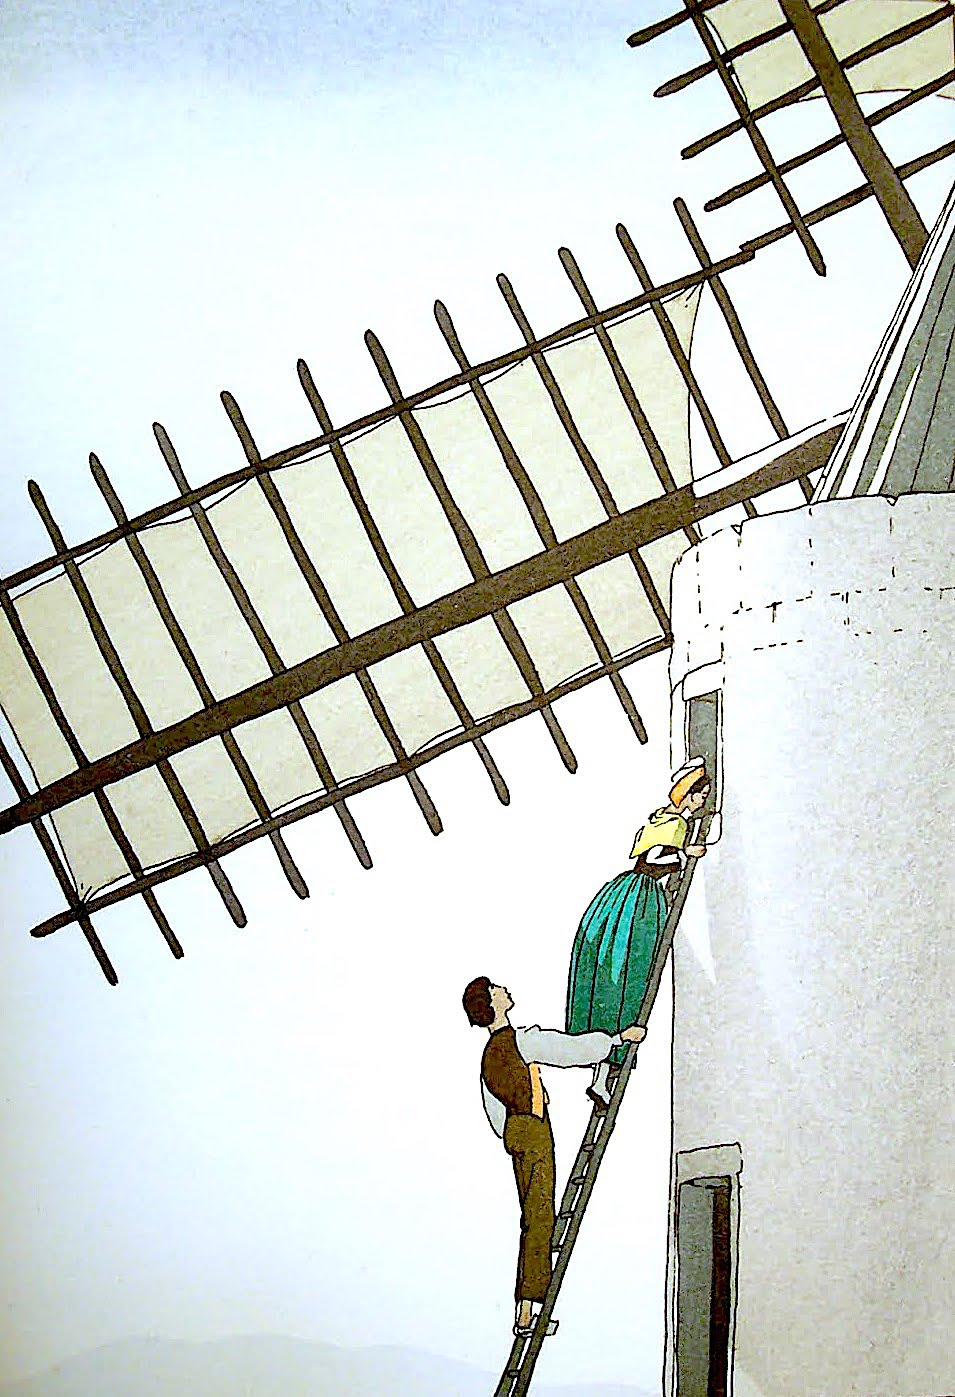 an André Edouard Marty illustration of two people on a windmill ladder